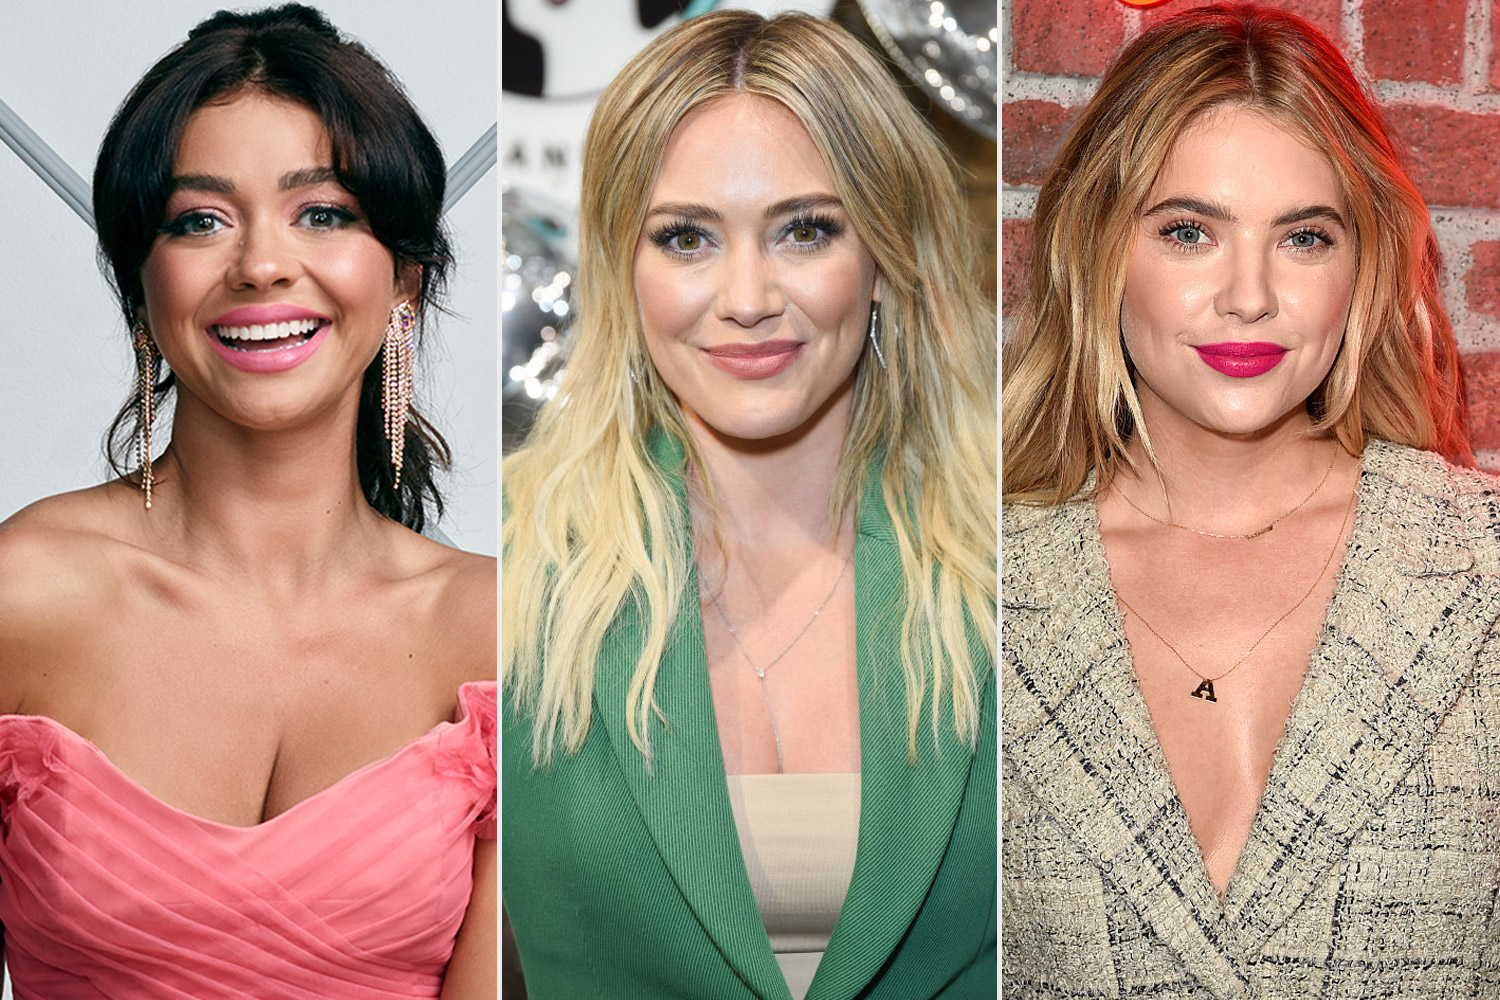 Sarah Hyland, hillary Duff and Ashley Benson